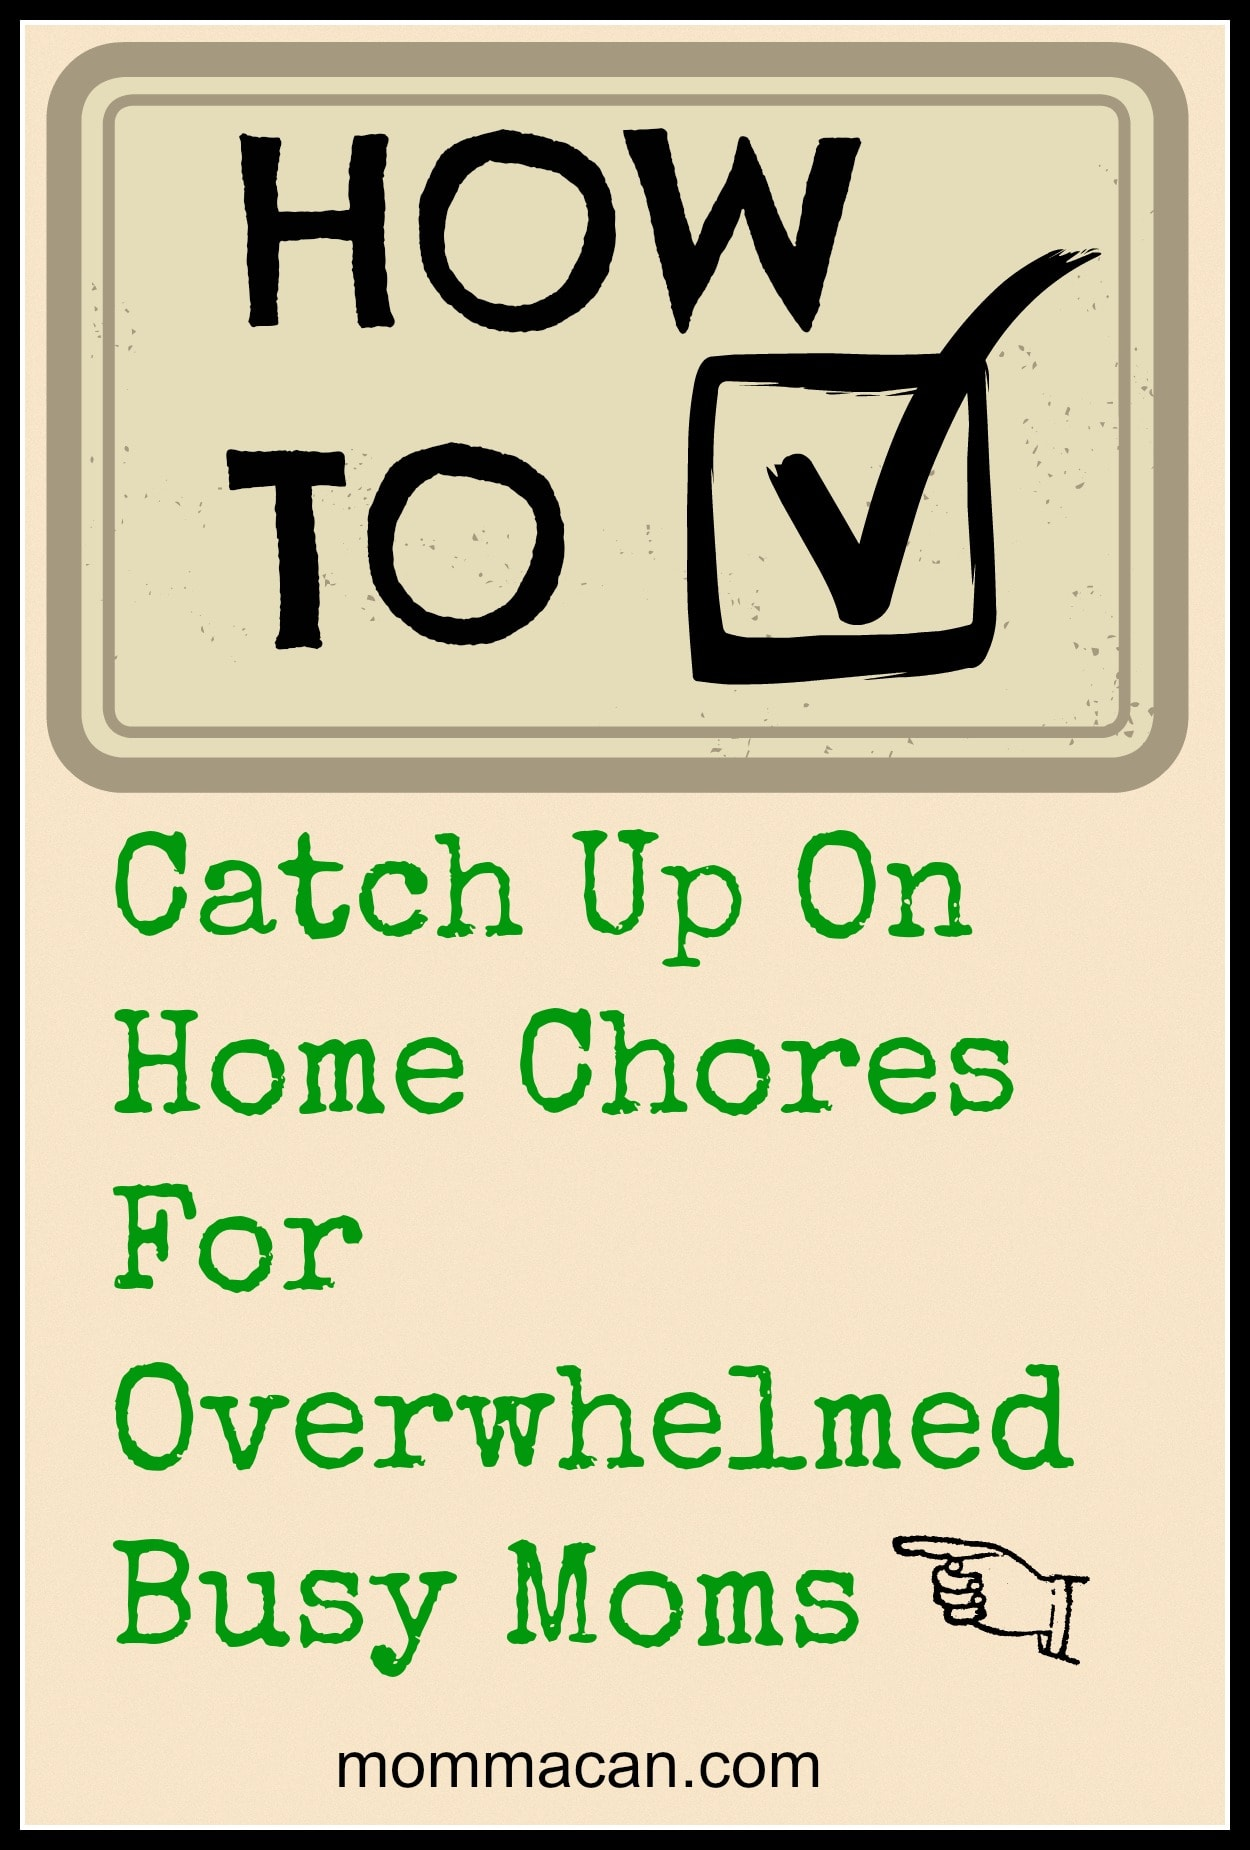 How To Catch Up On Home Chores For Overwhelmed Moms